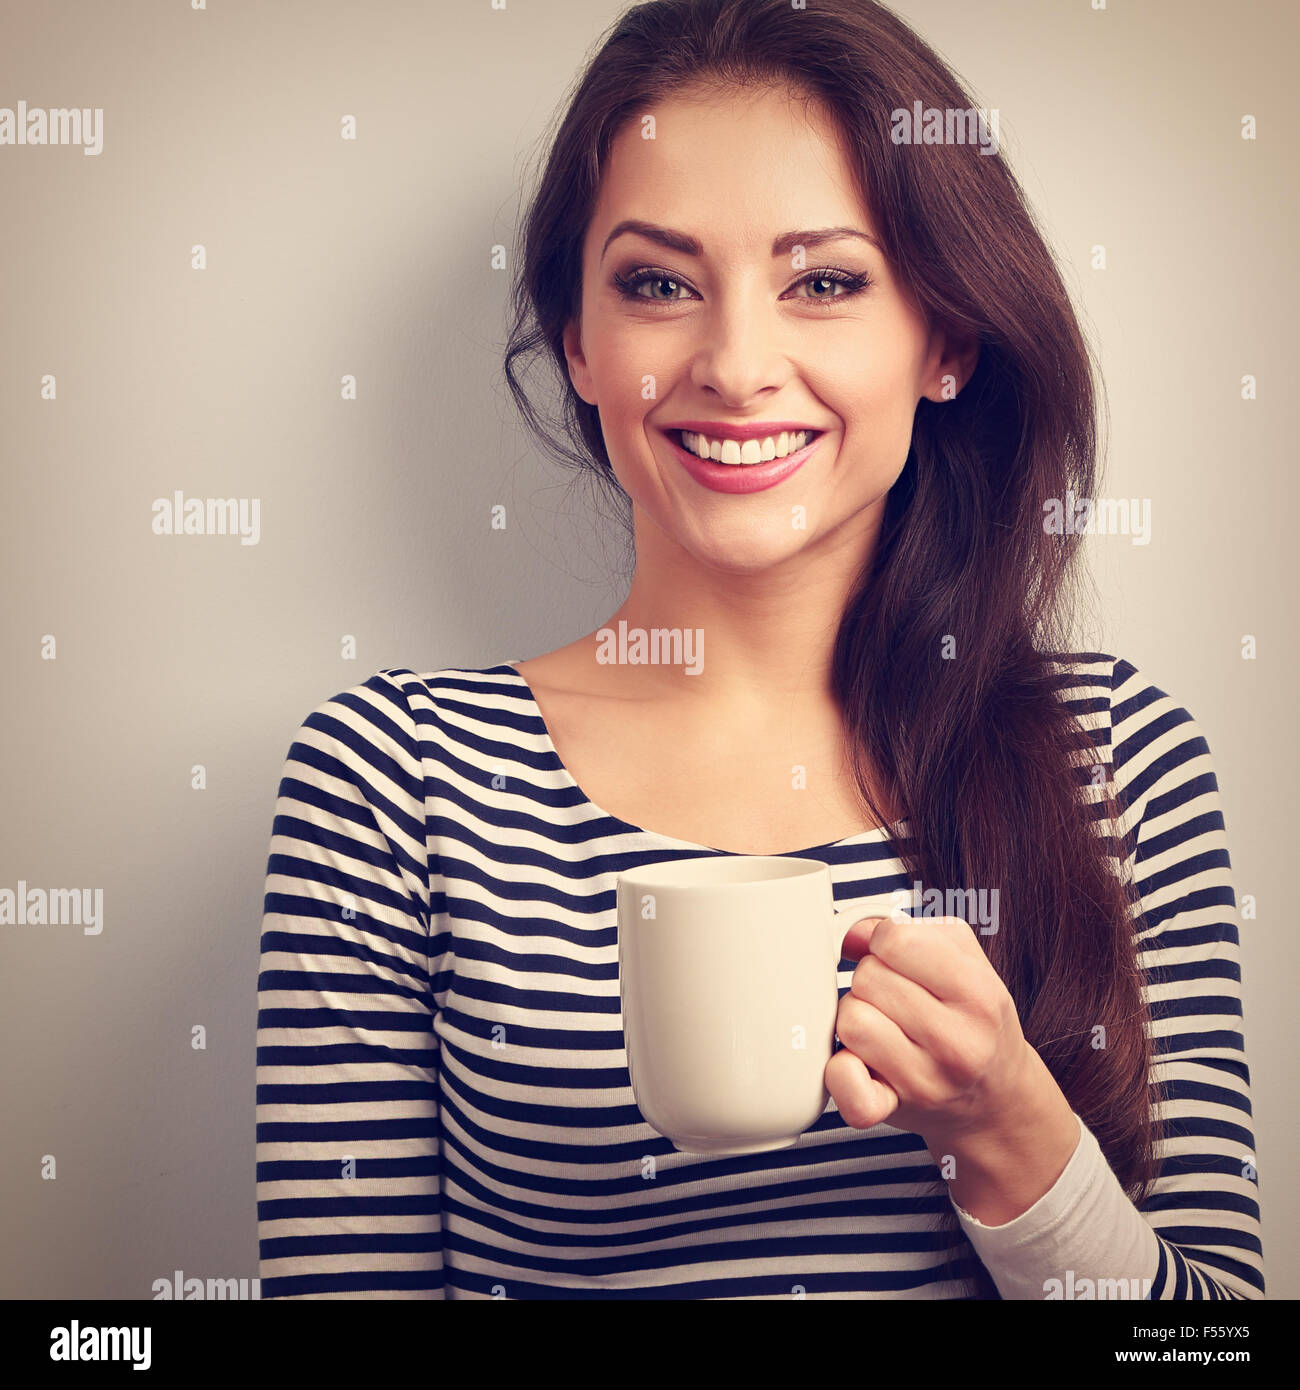 Happy toothy smiling casual young woman with cup of tea. Vintage closeup portrait - Stock Image